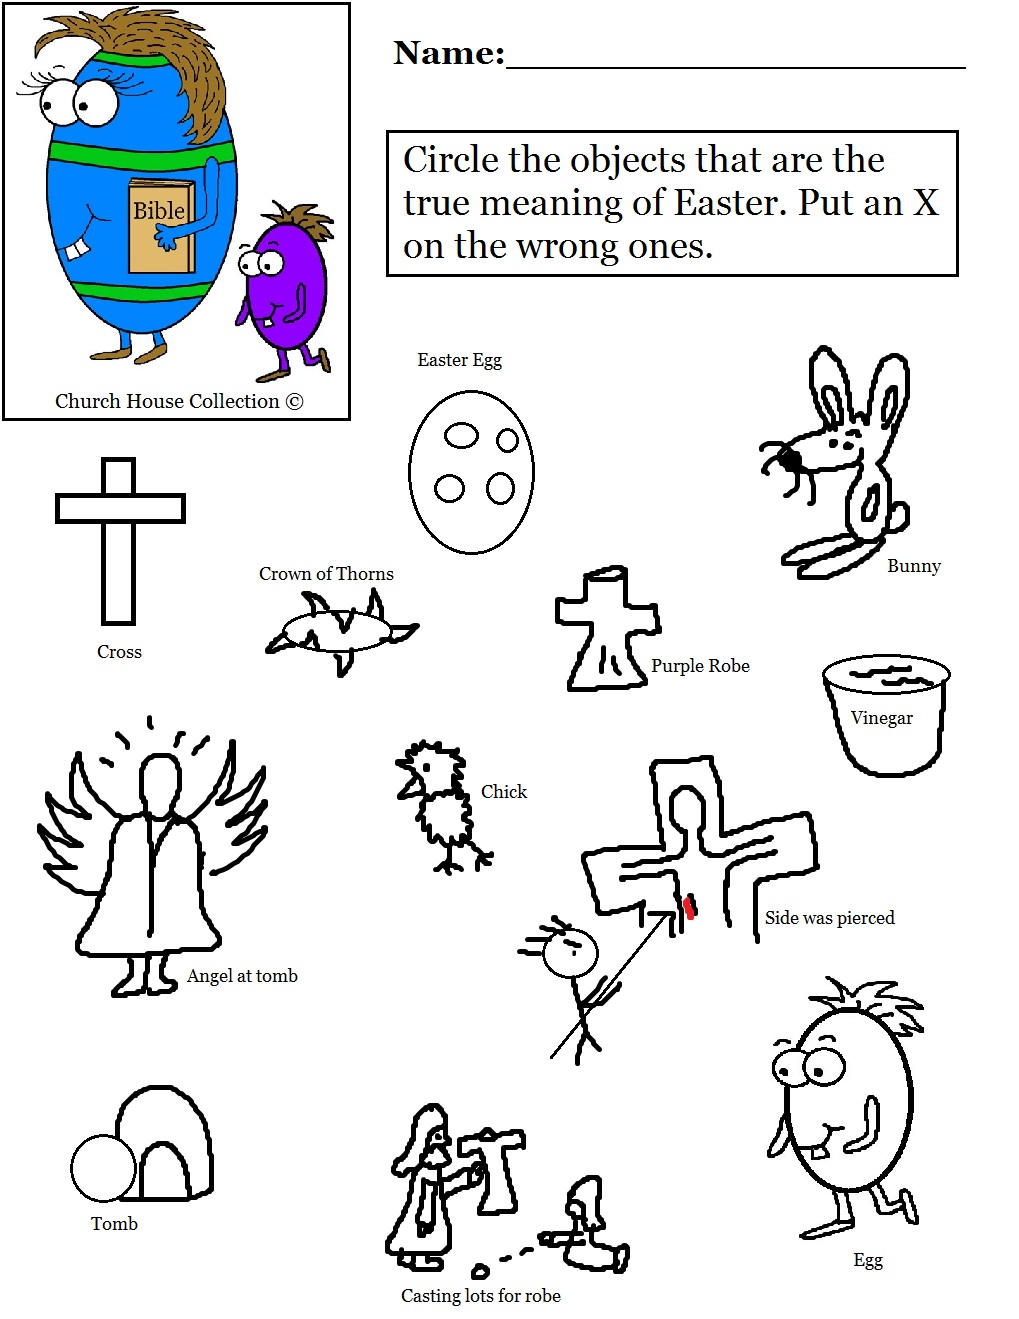 Printables Bible Worksheets For Preschoolers easter worksheets printable for kids teachers and itsy bitsy fun